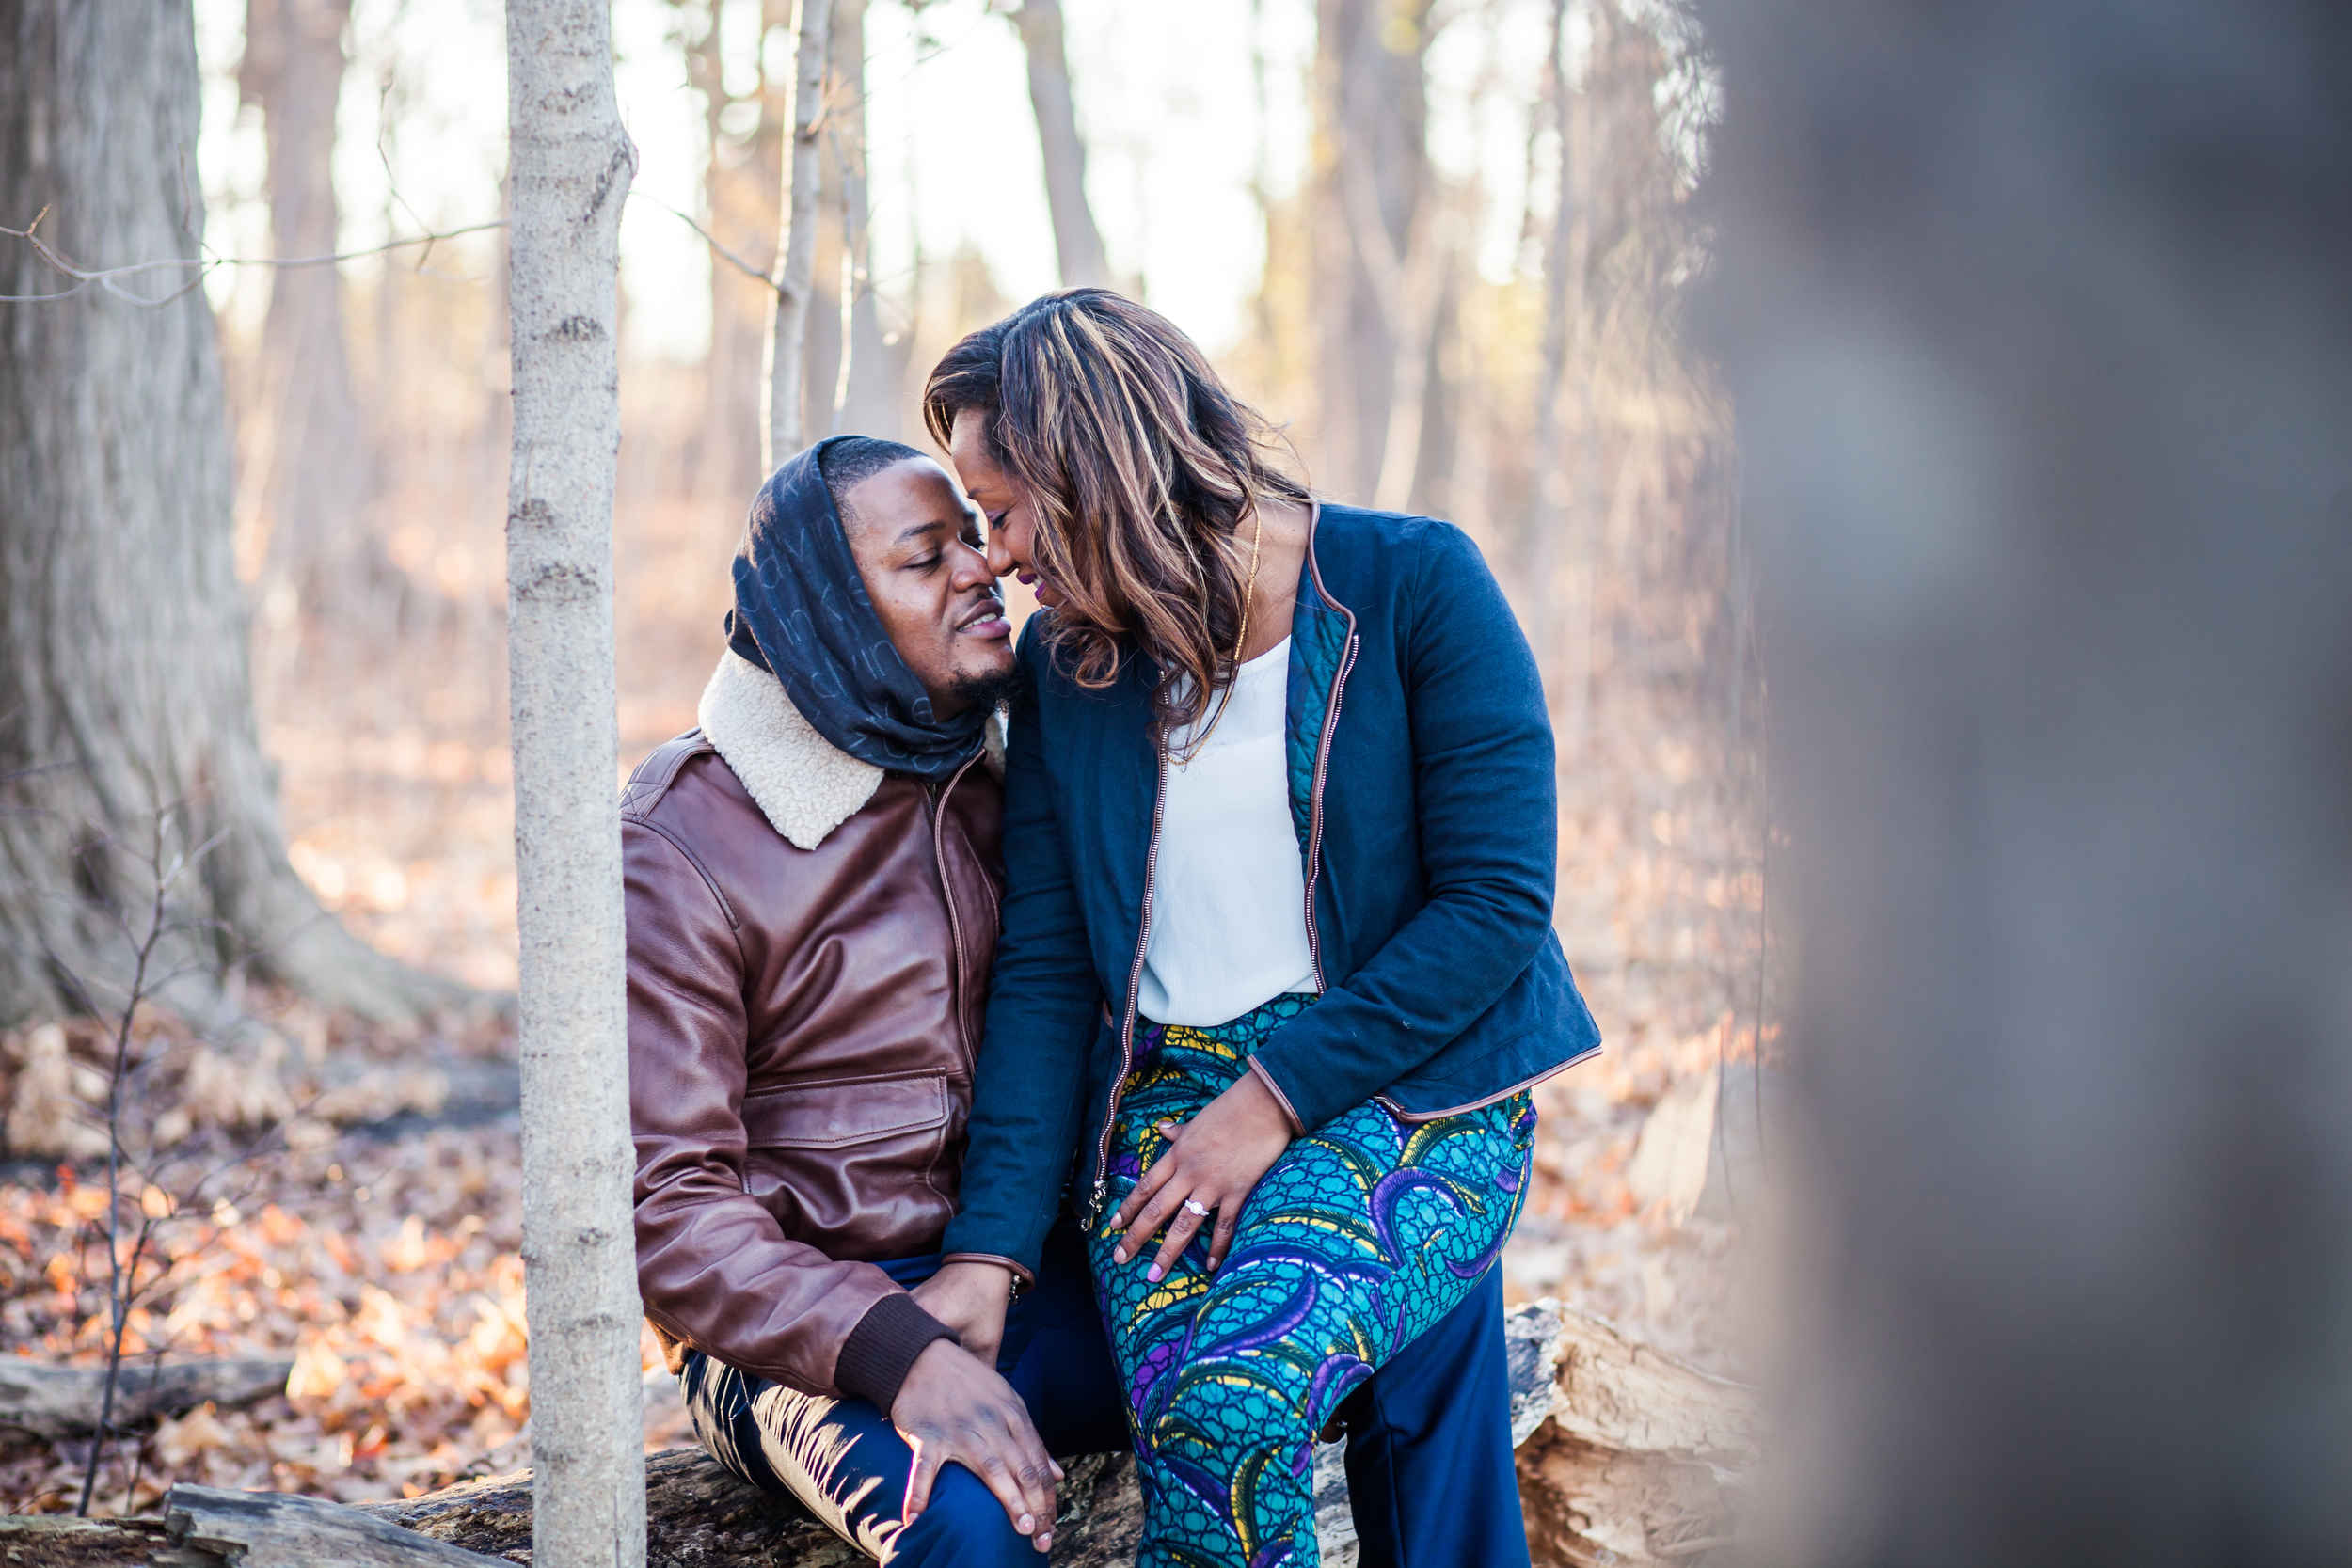 Fall Photoshoot In The Woods Karimah Gheddai